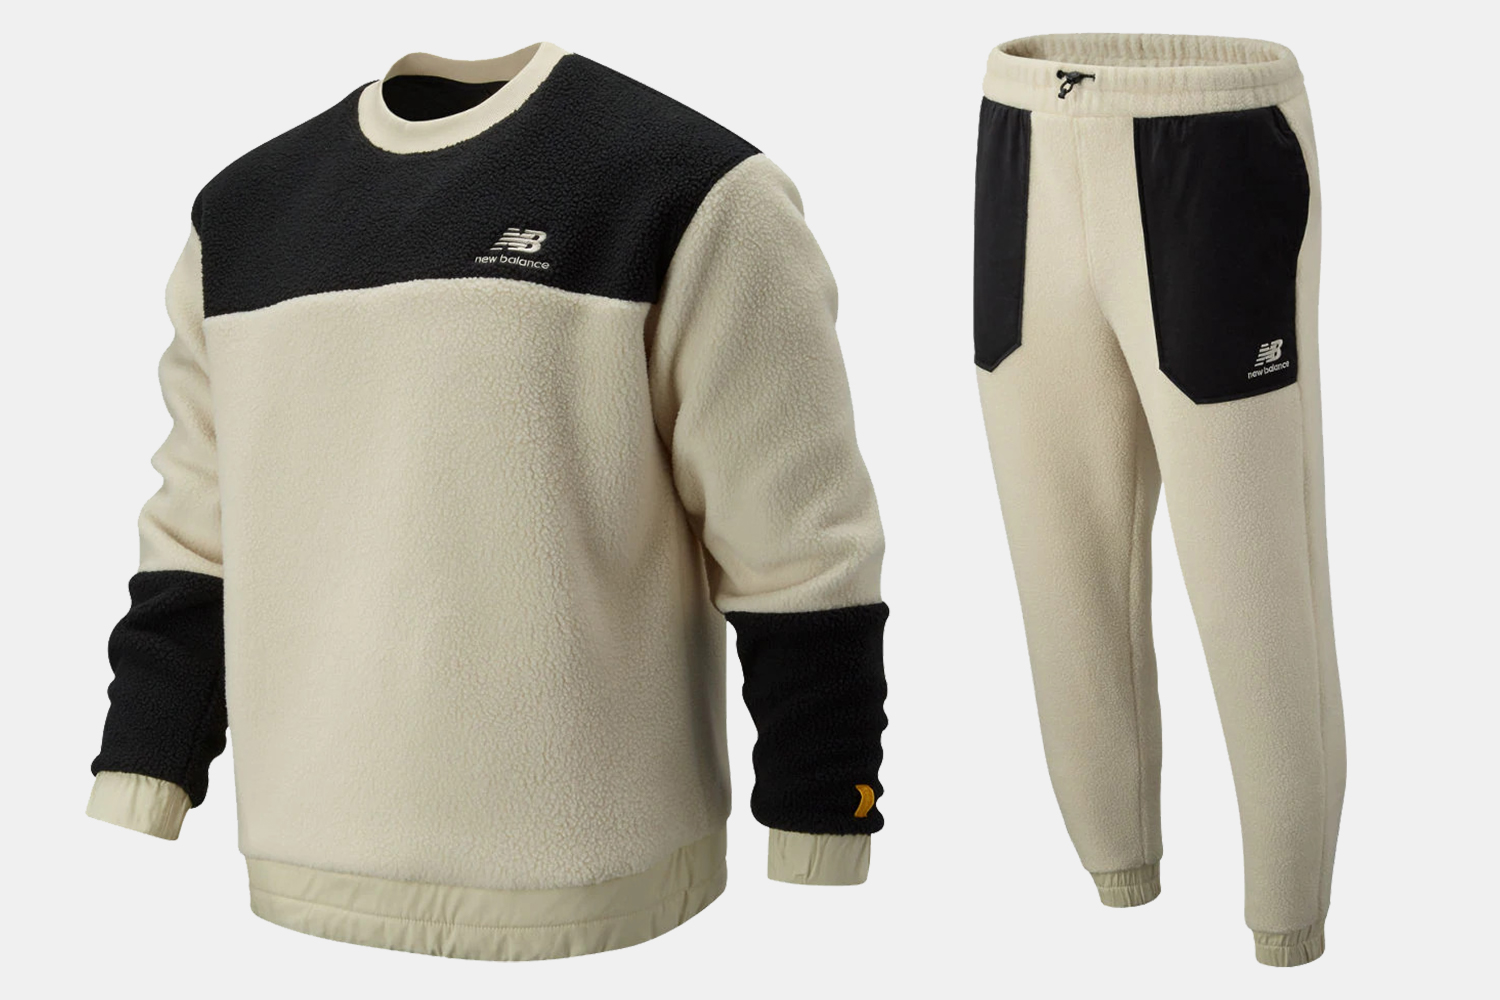 New Balance Athletics Sherpa Gear